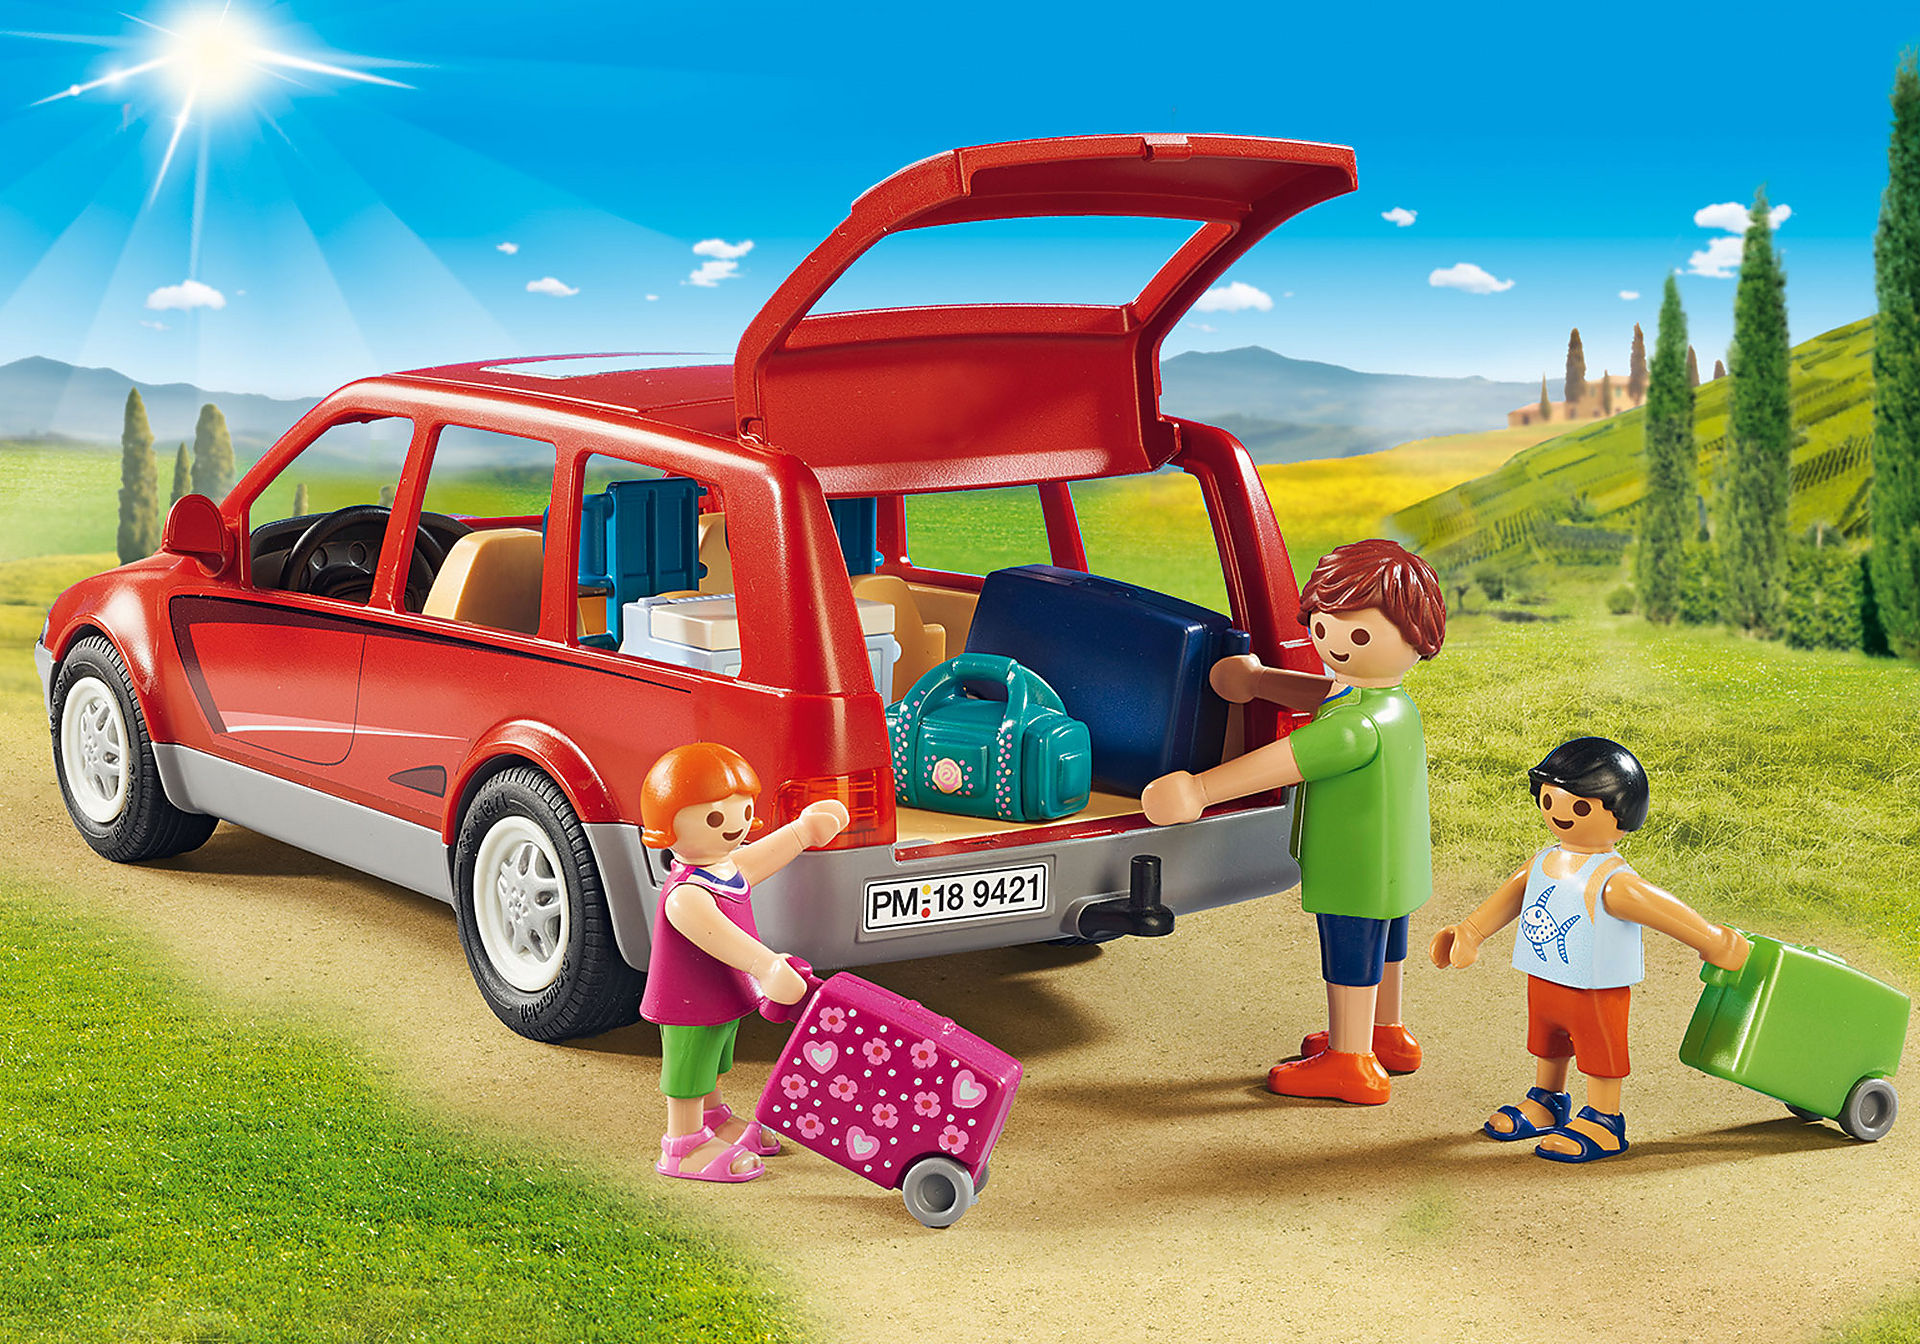 http://media.playmobil.com/i/playmobil/9421_product_extra1/Familien-PKW